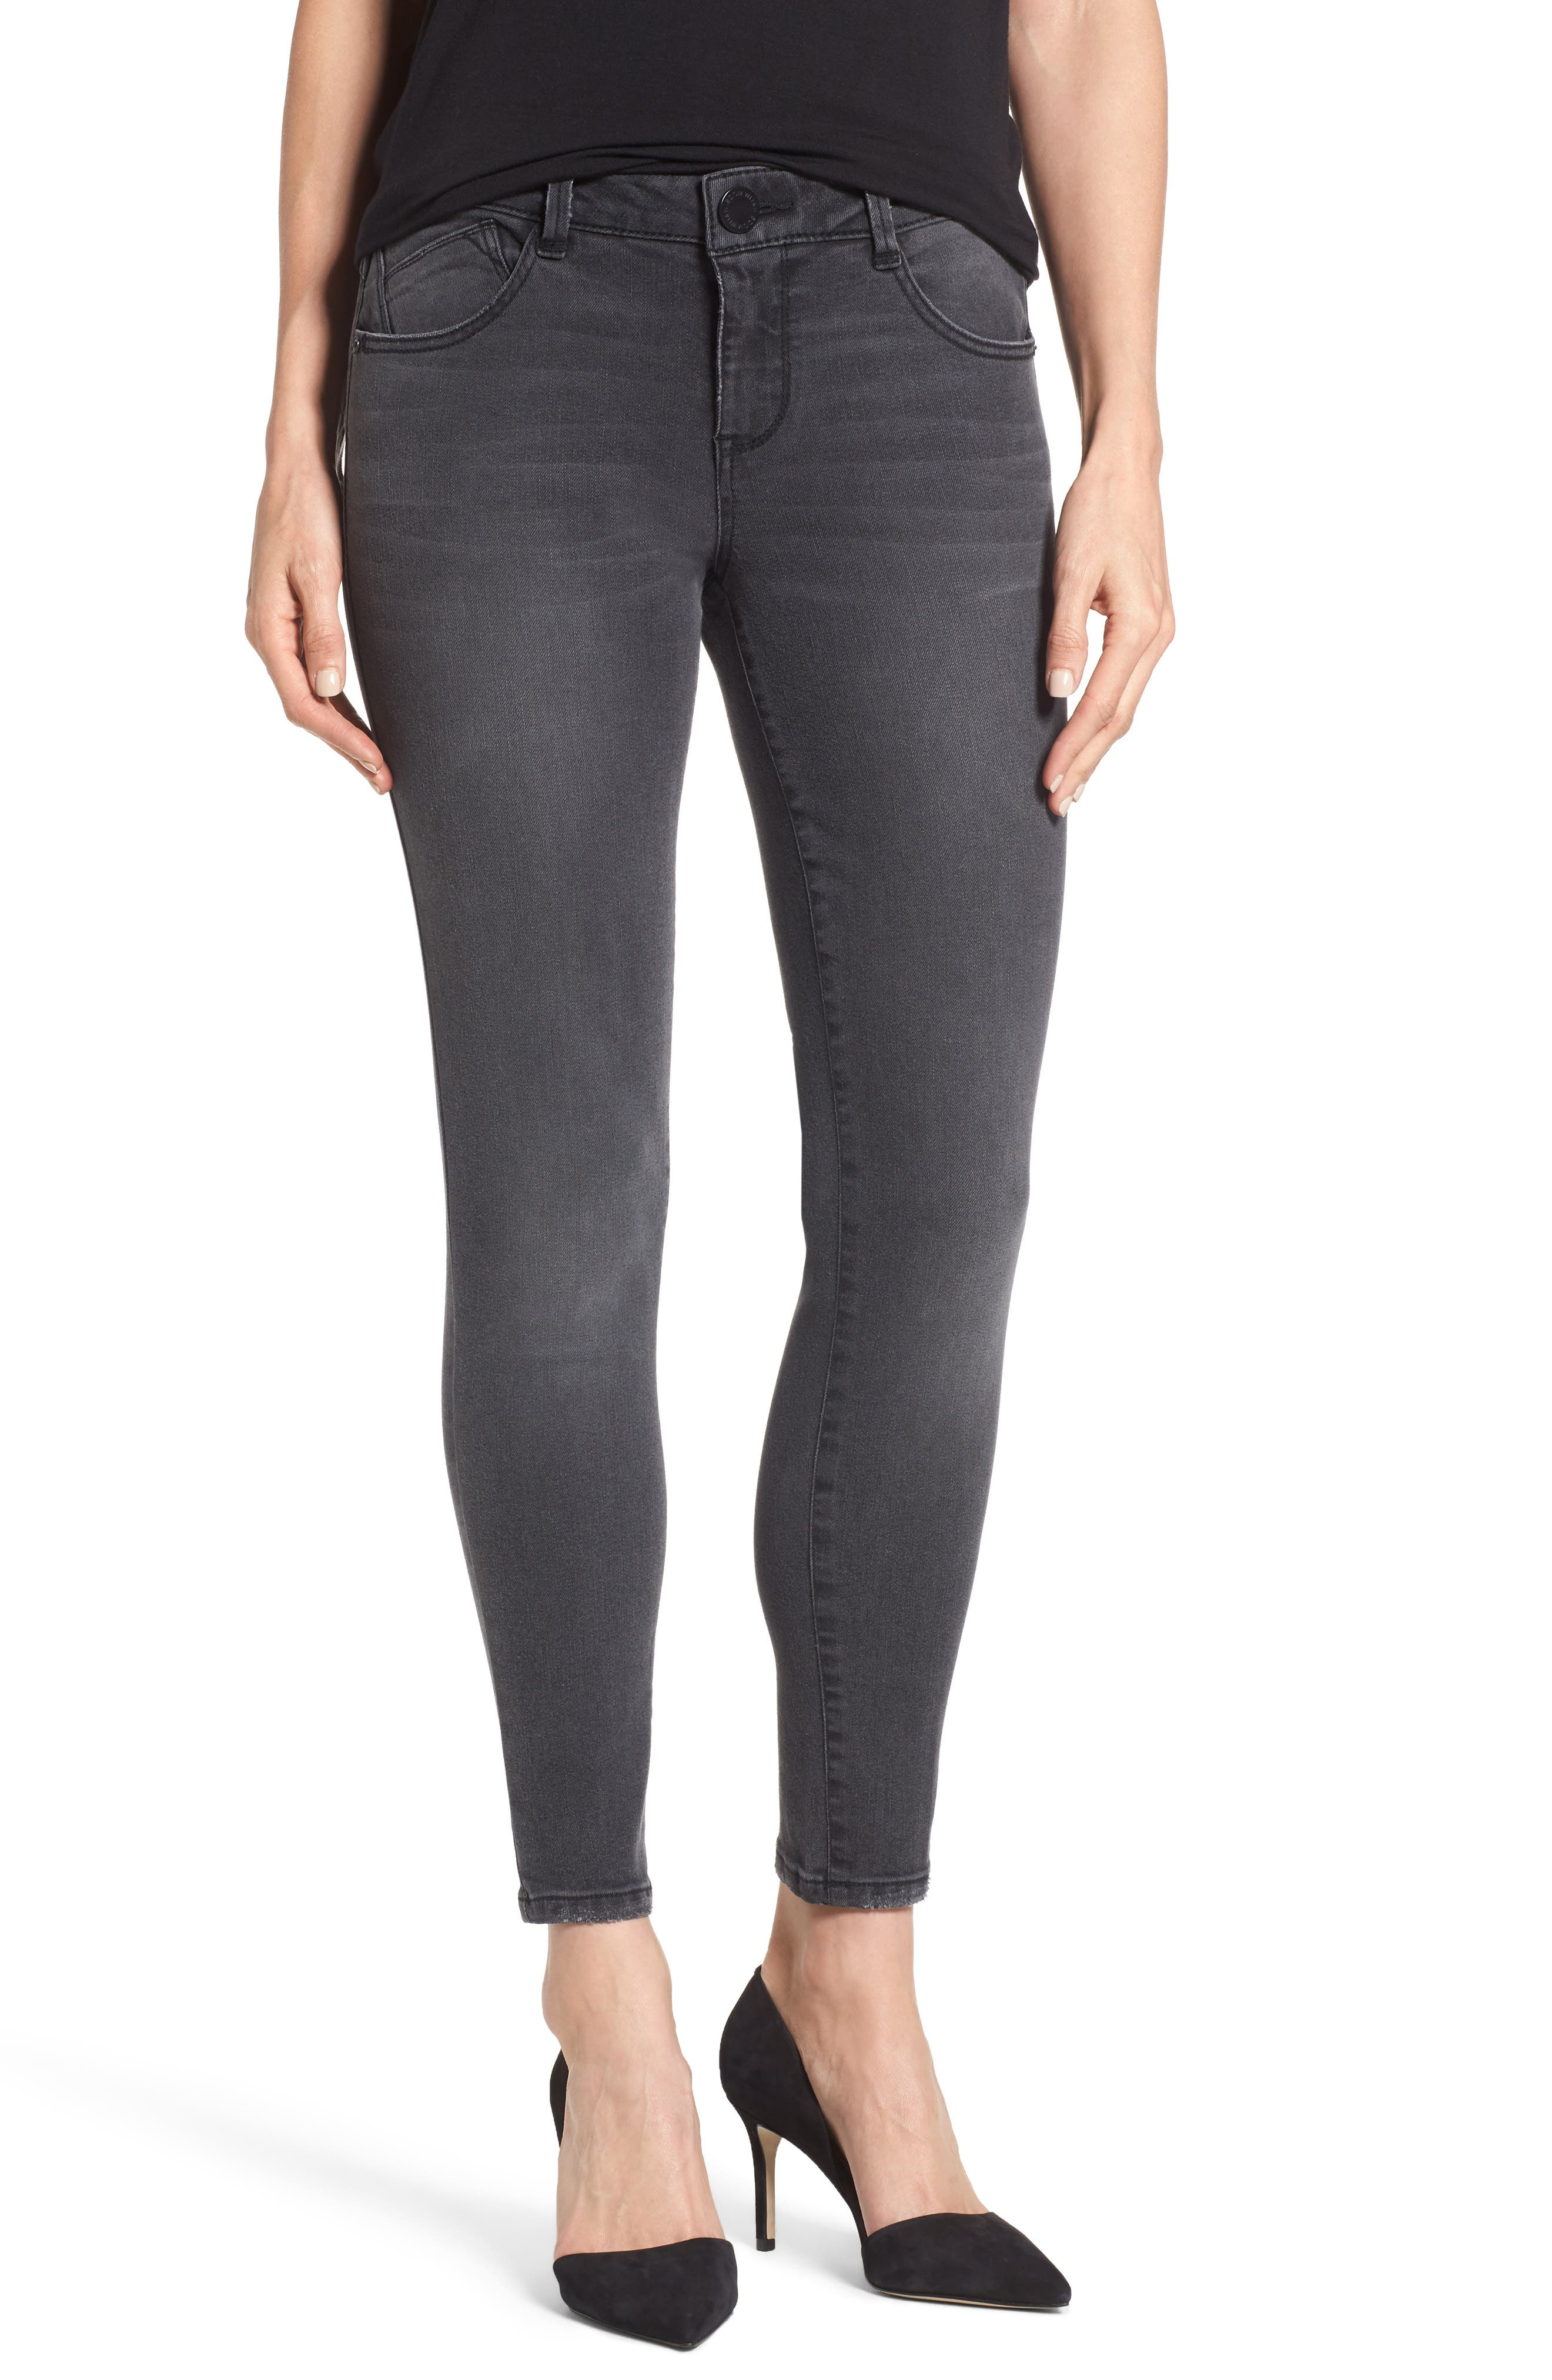 Alternate Image 1 Selected - Wit & Wisdom Skinny Ankle Jeans (Nordstrom Exclusive) (Regular & Petite)